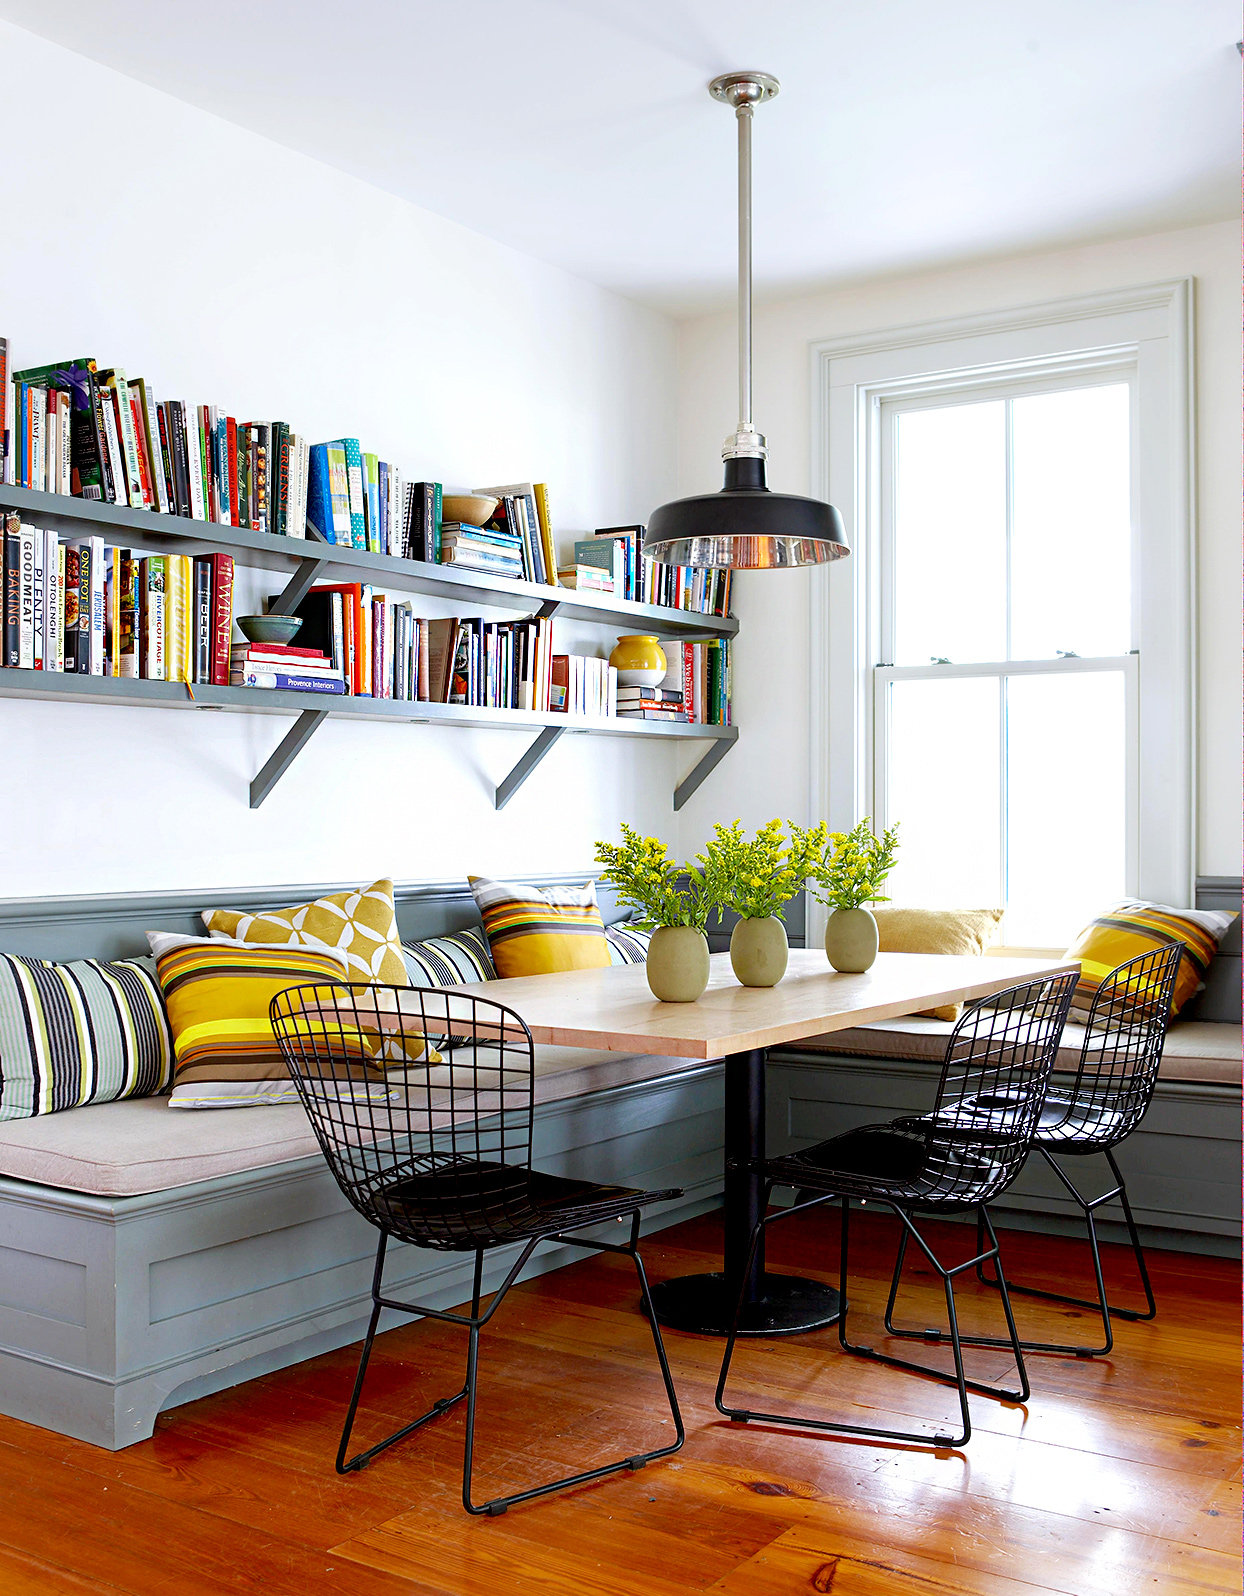 Dining area with bench seating and books